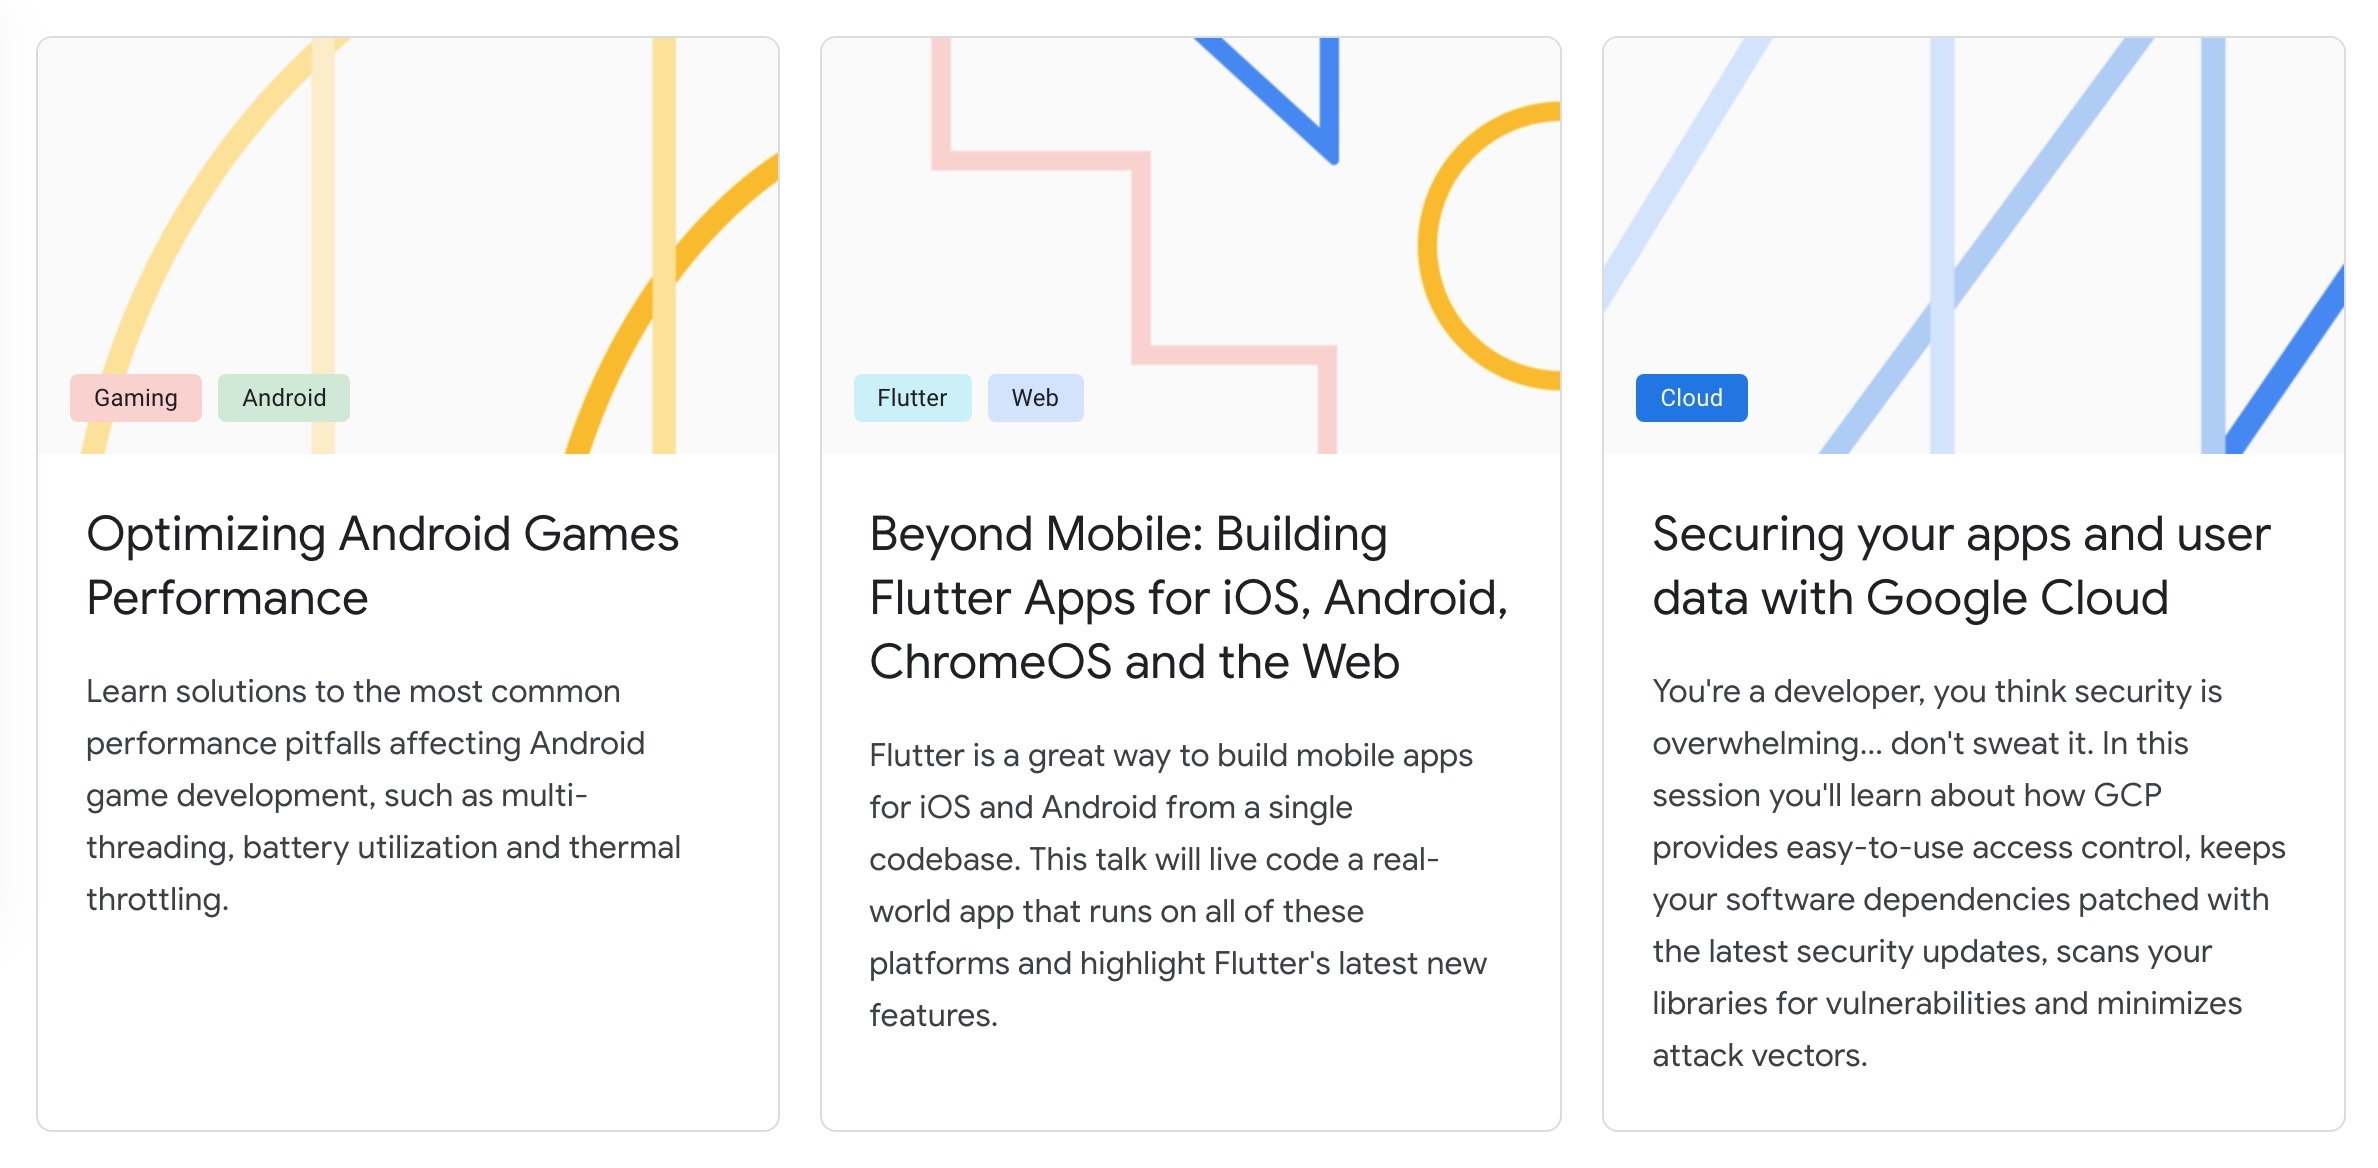 Google previews I/O 2019 schedule and tracks, including new